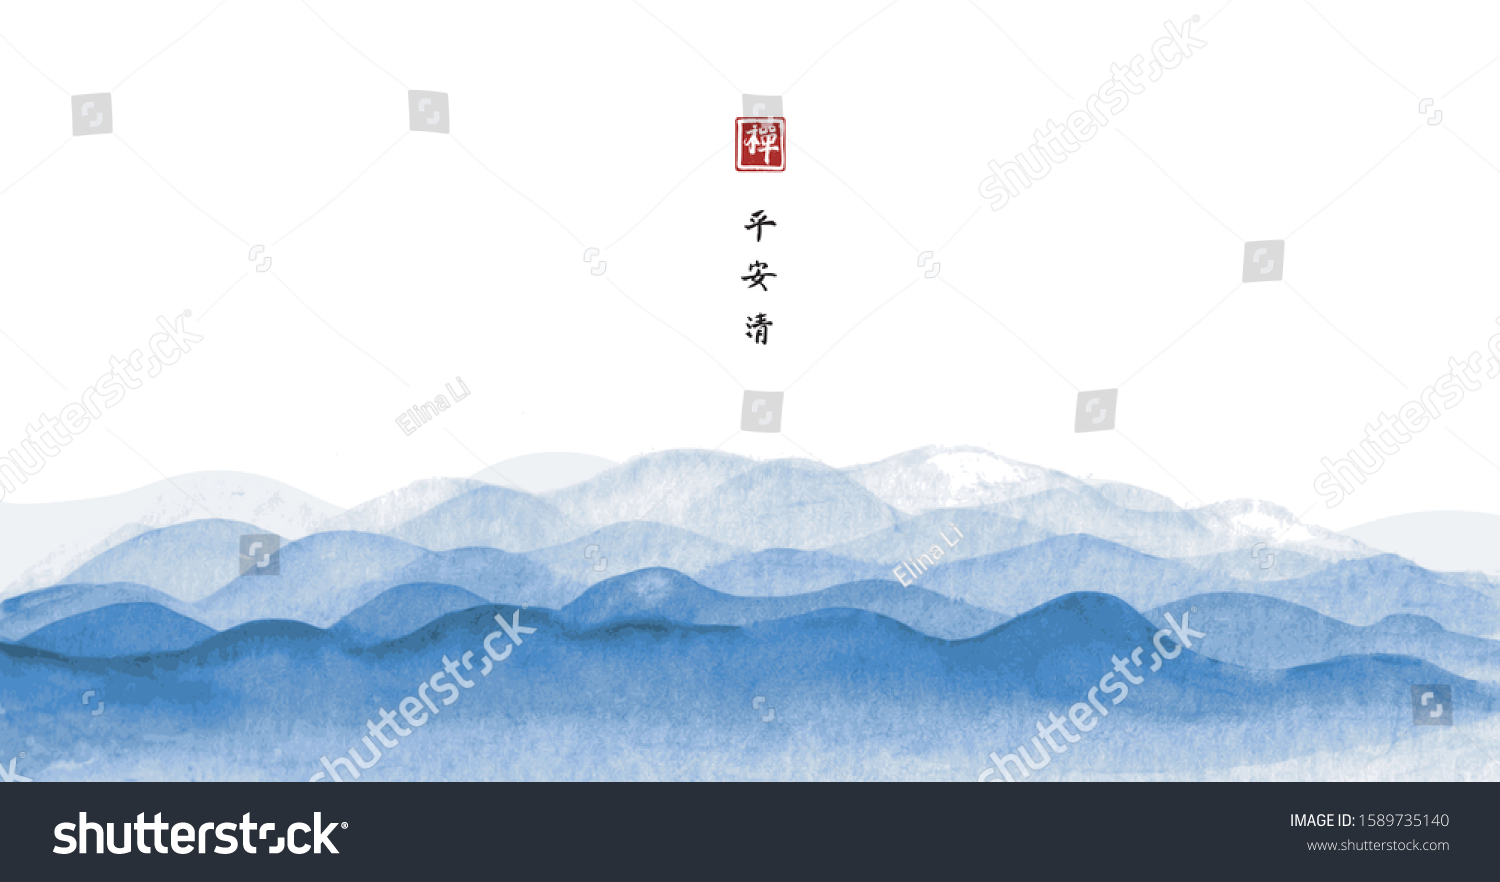 Hills silhouette. Landscape with blue mountains. Traditional oriental ink painting sumi-e, u-sin, go-hua. Hieroglyphs - peace, tranquility, clarity, zen. #1589735140